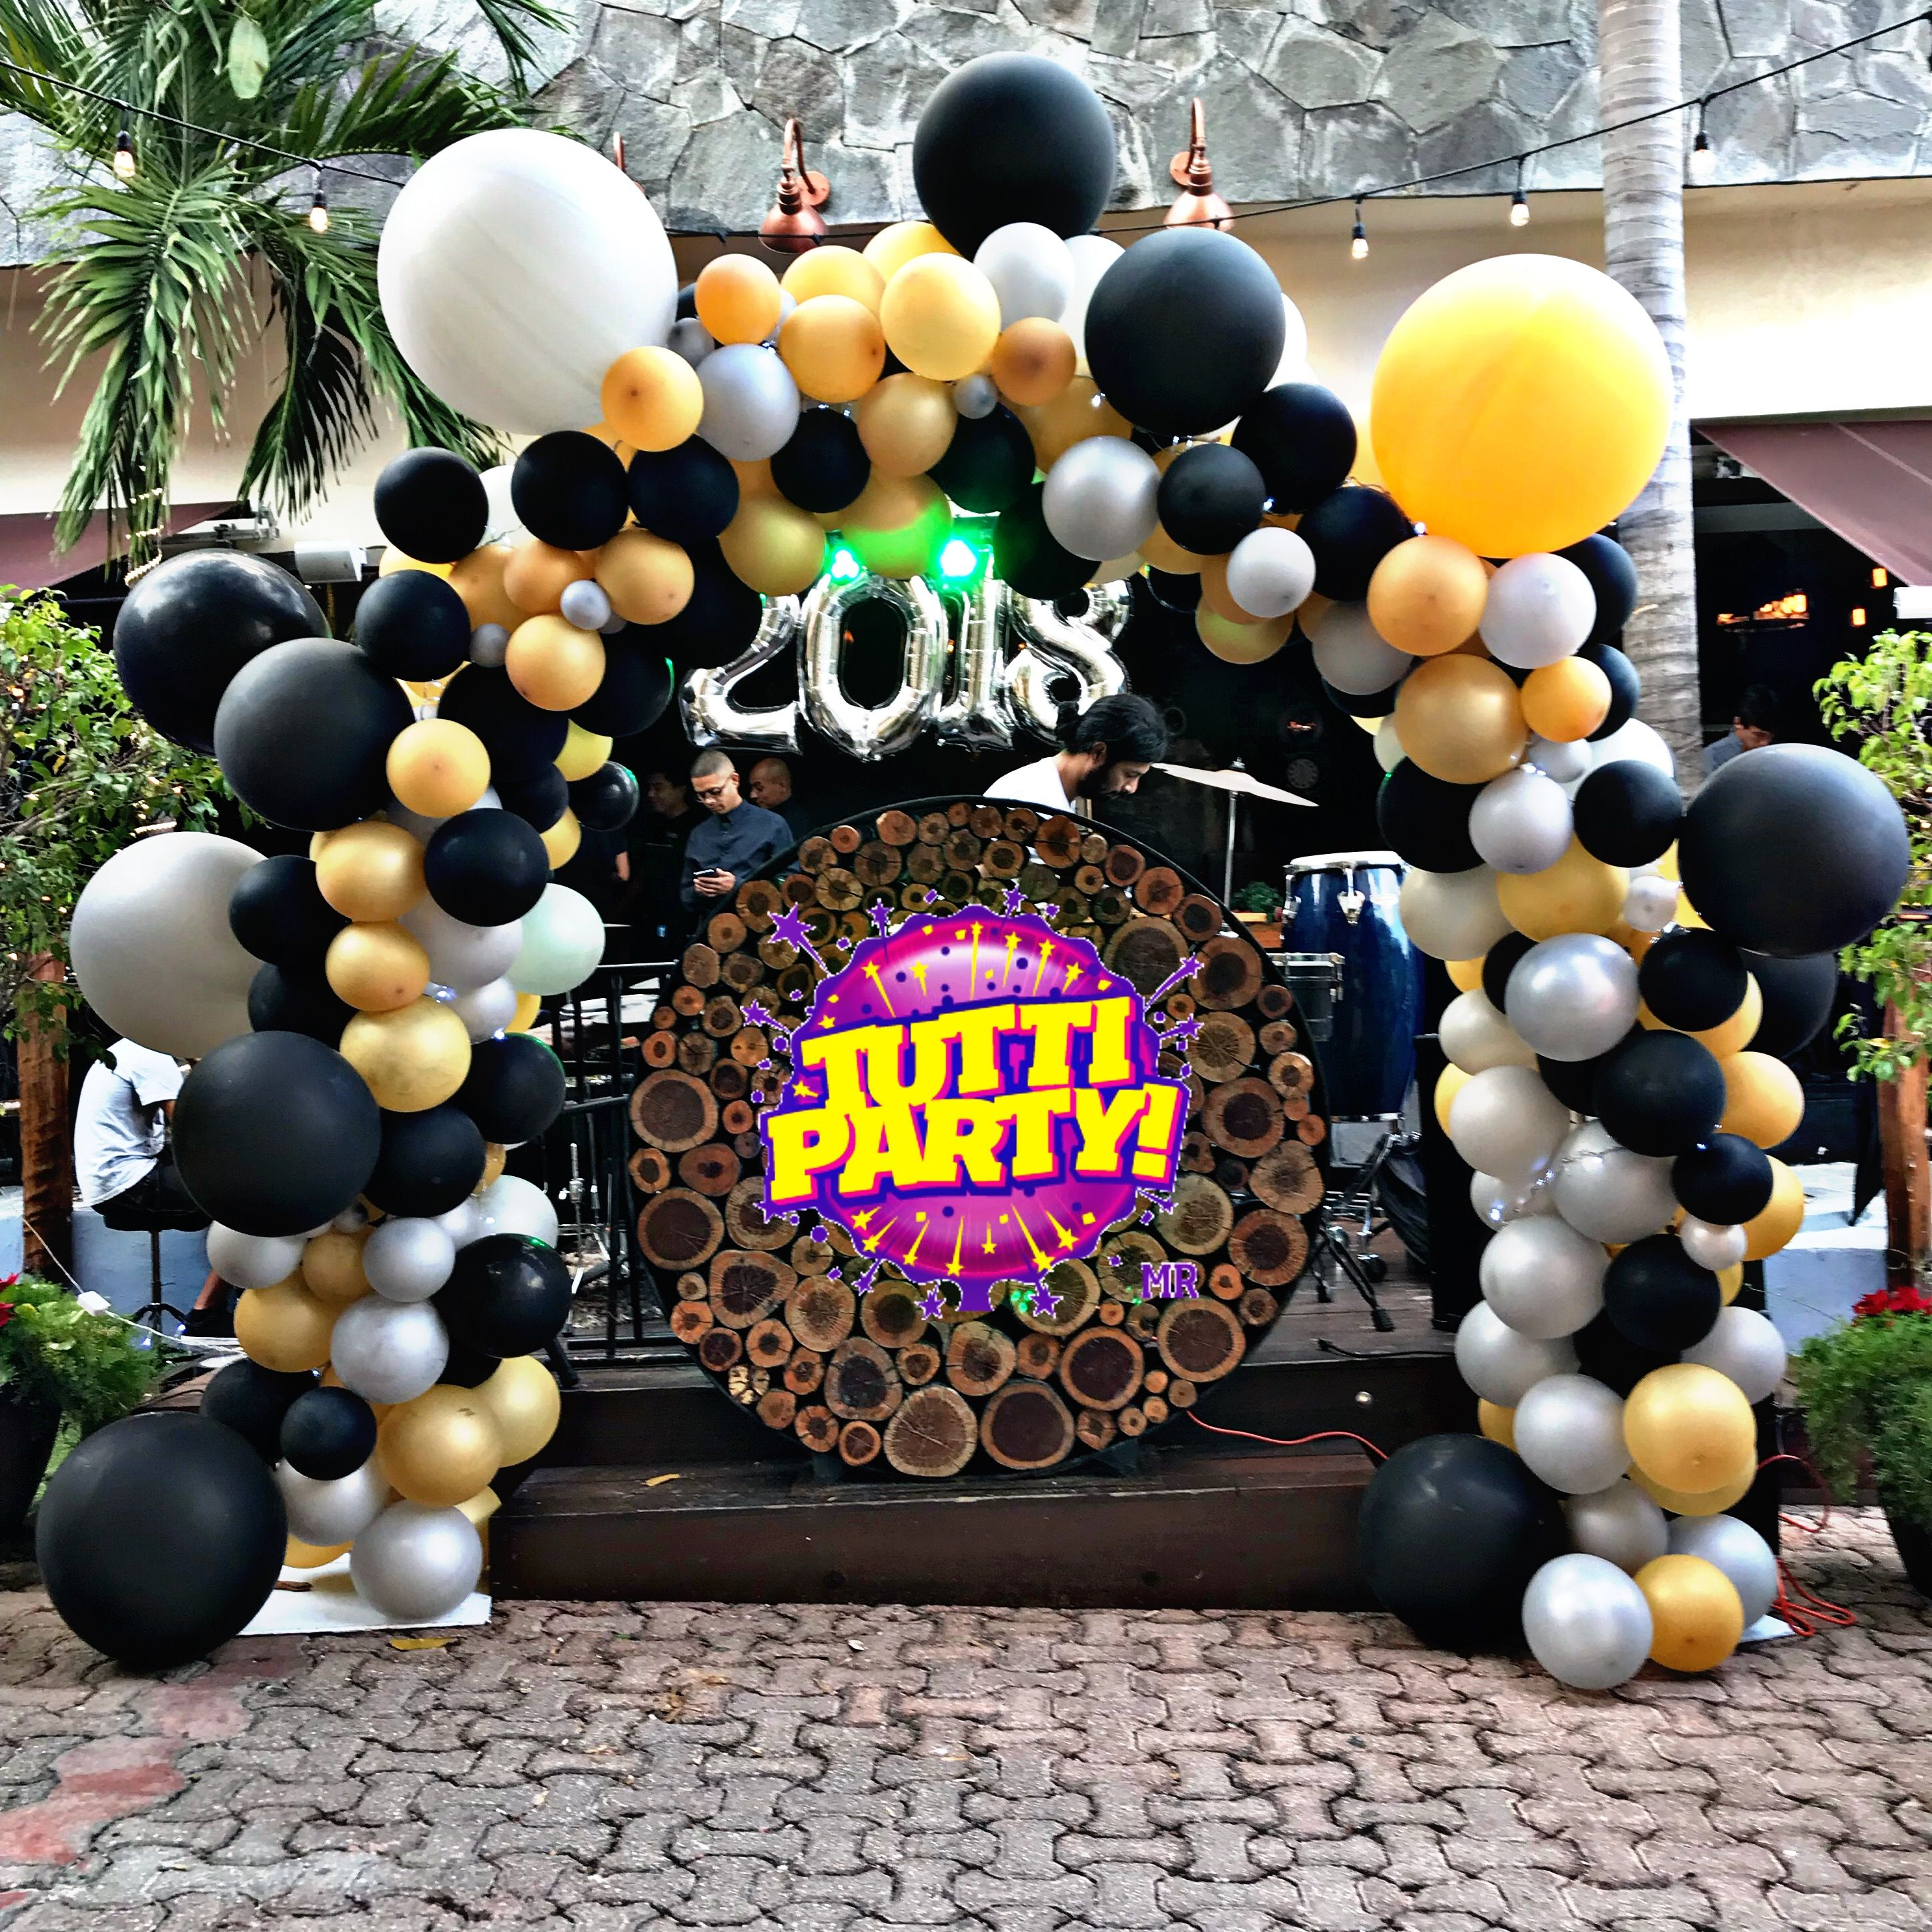 Big balloons arch decorations new years Eve